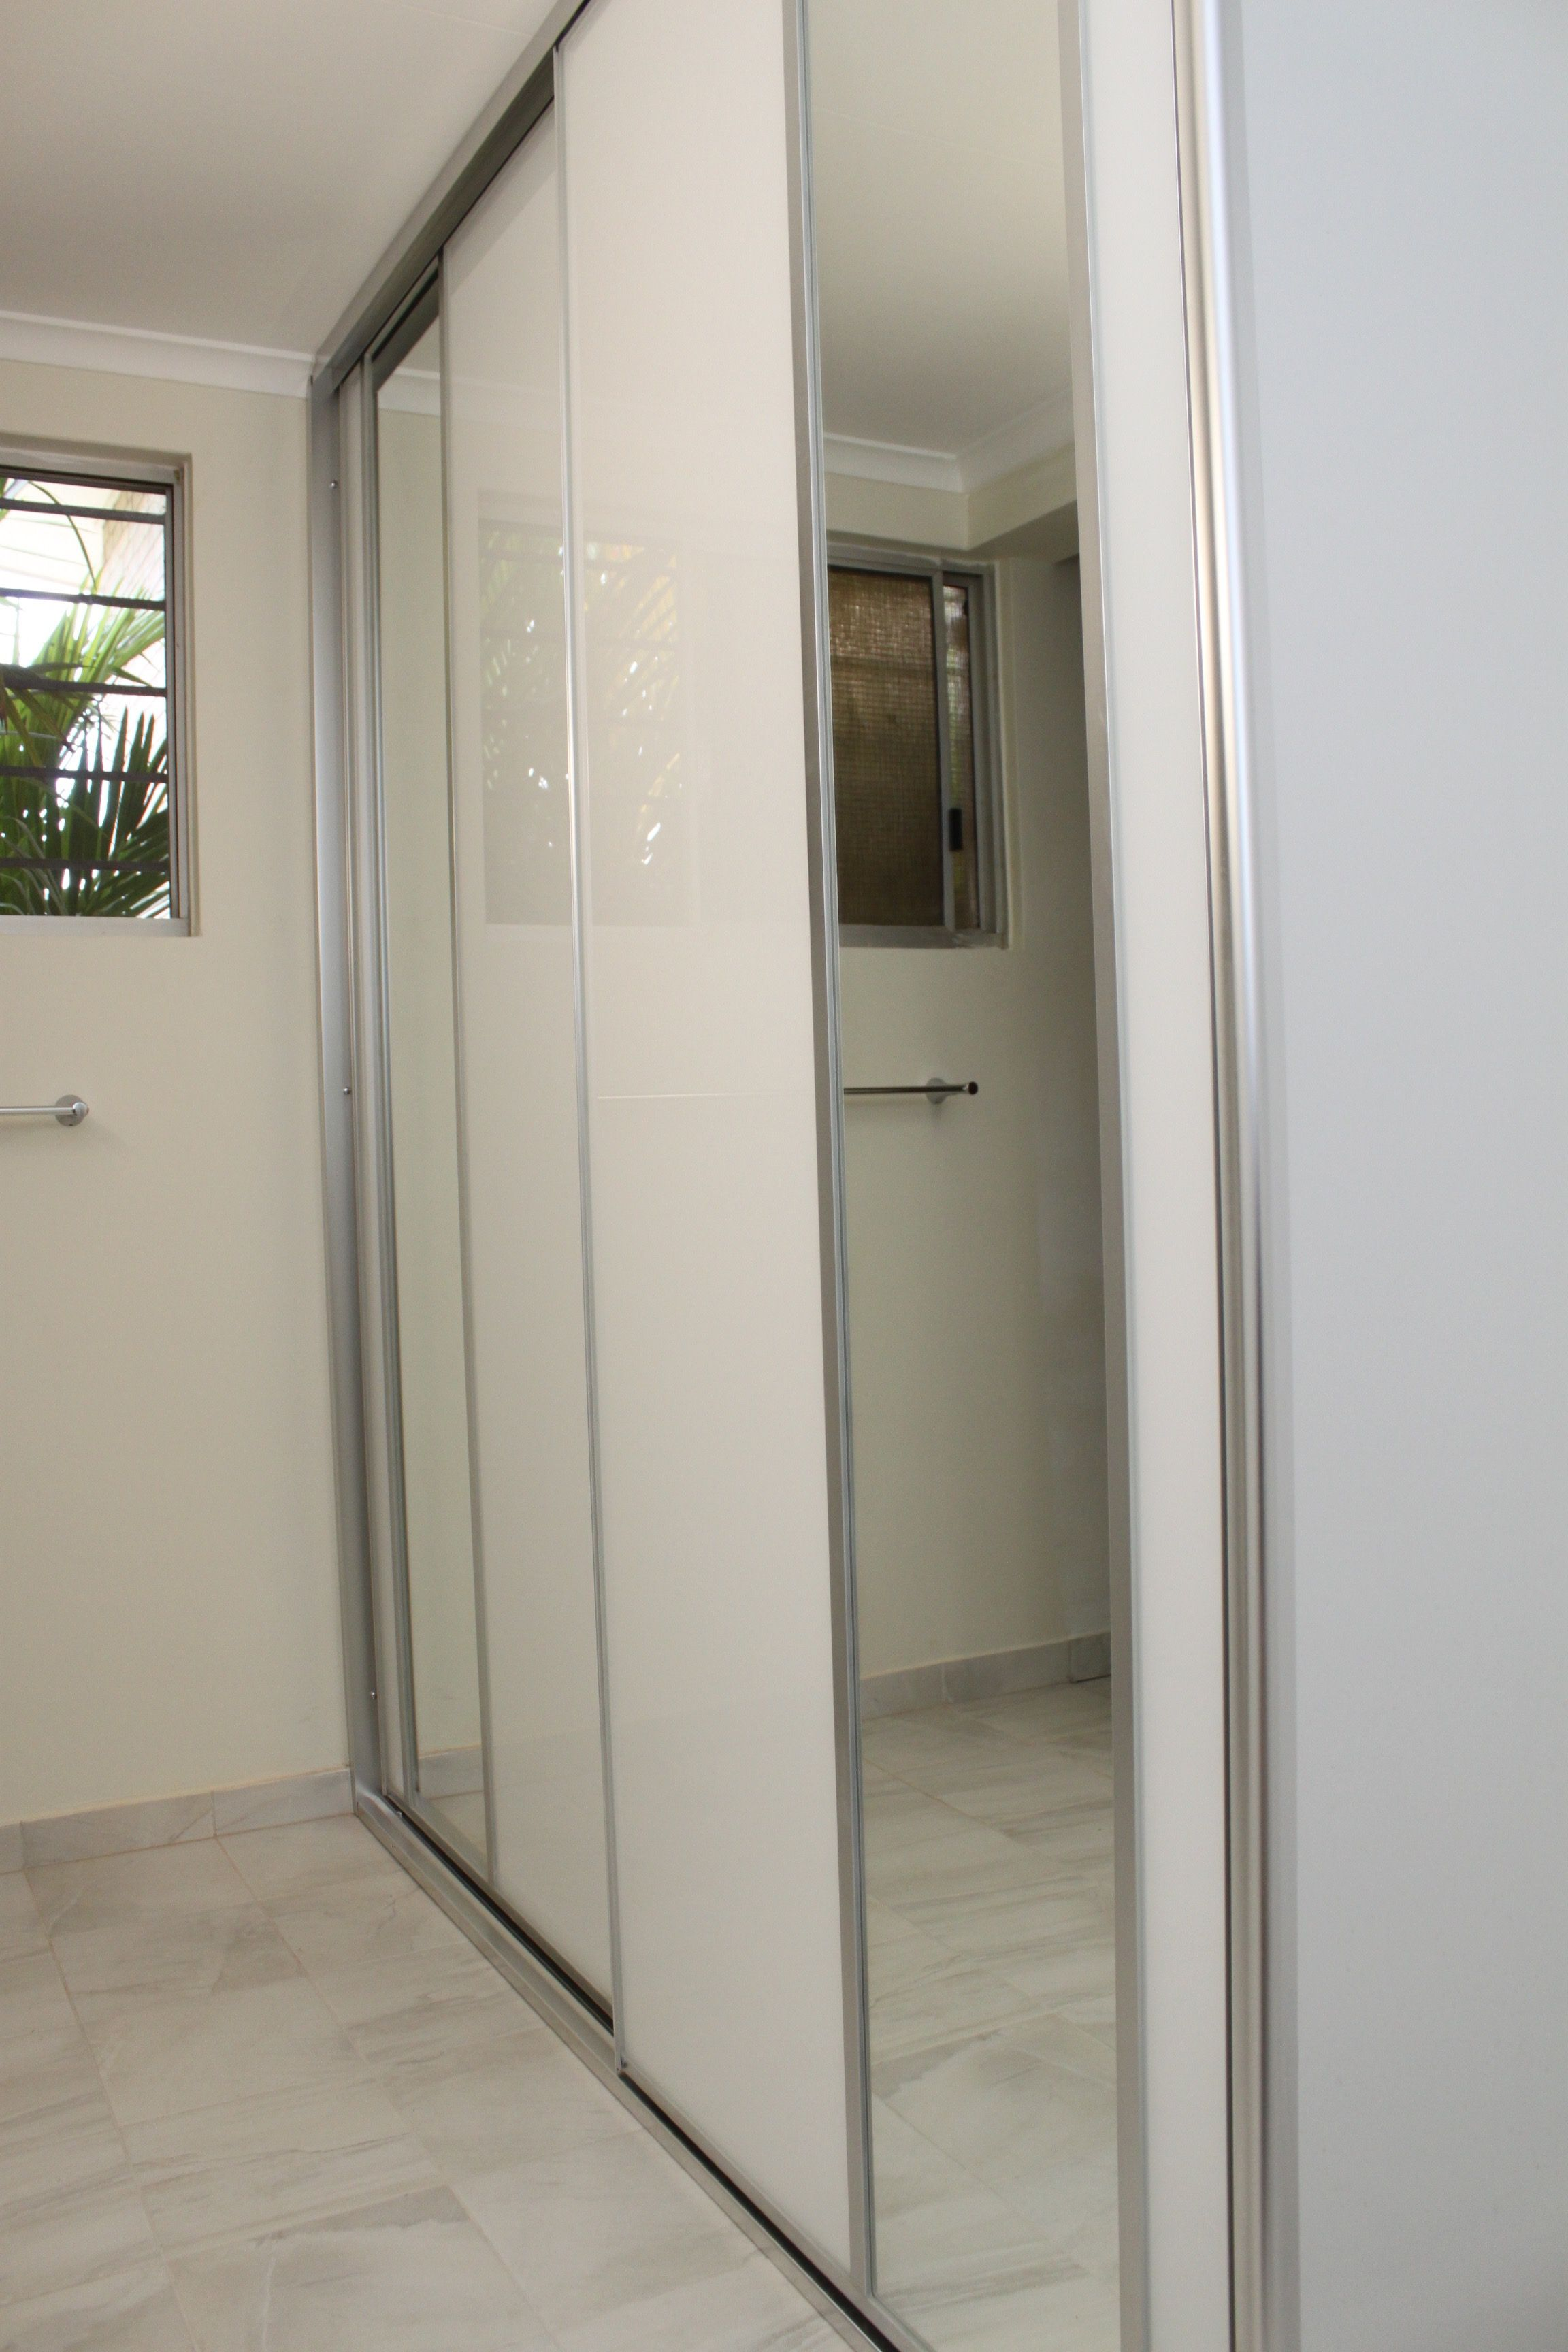 Cupboard sliding doors for wet areas super white clear glass with cupboard sliding doors for wet areas super white clear glass with mirror insert compliment planetlyrics Images